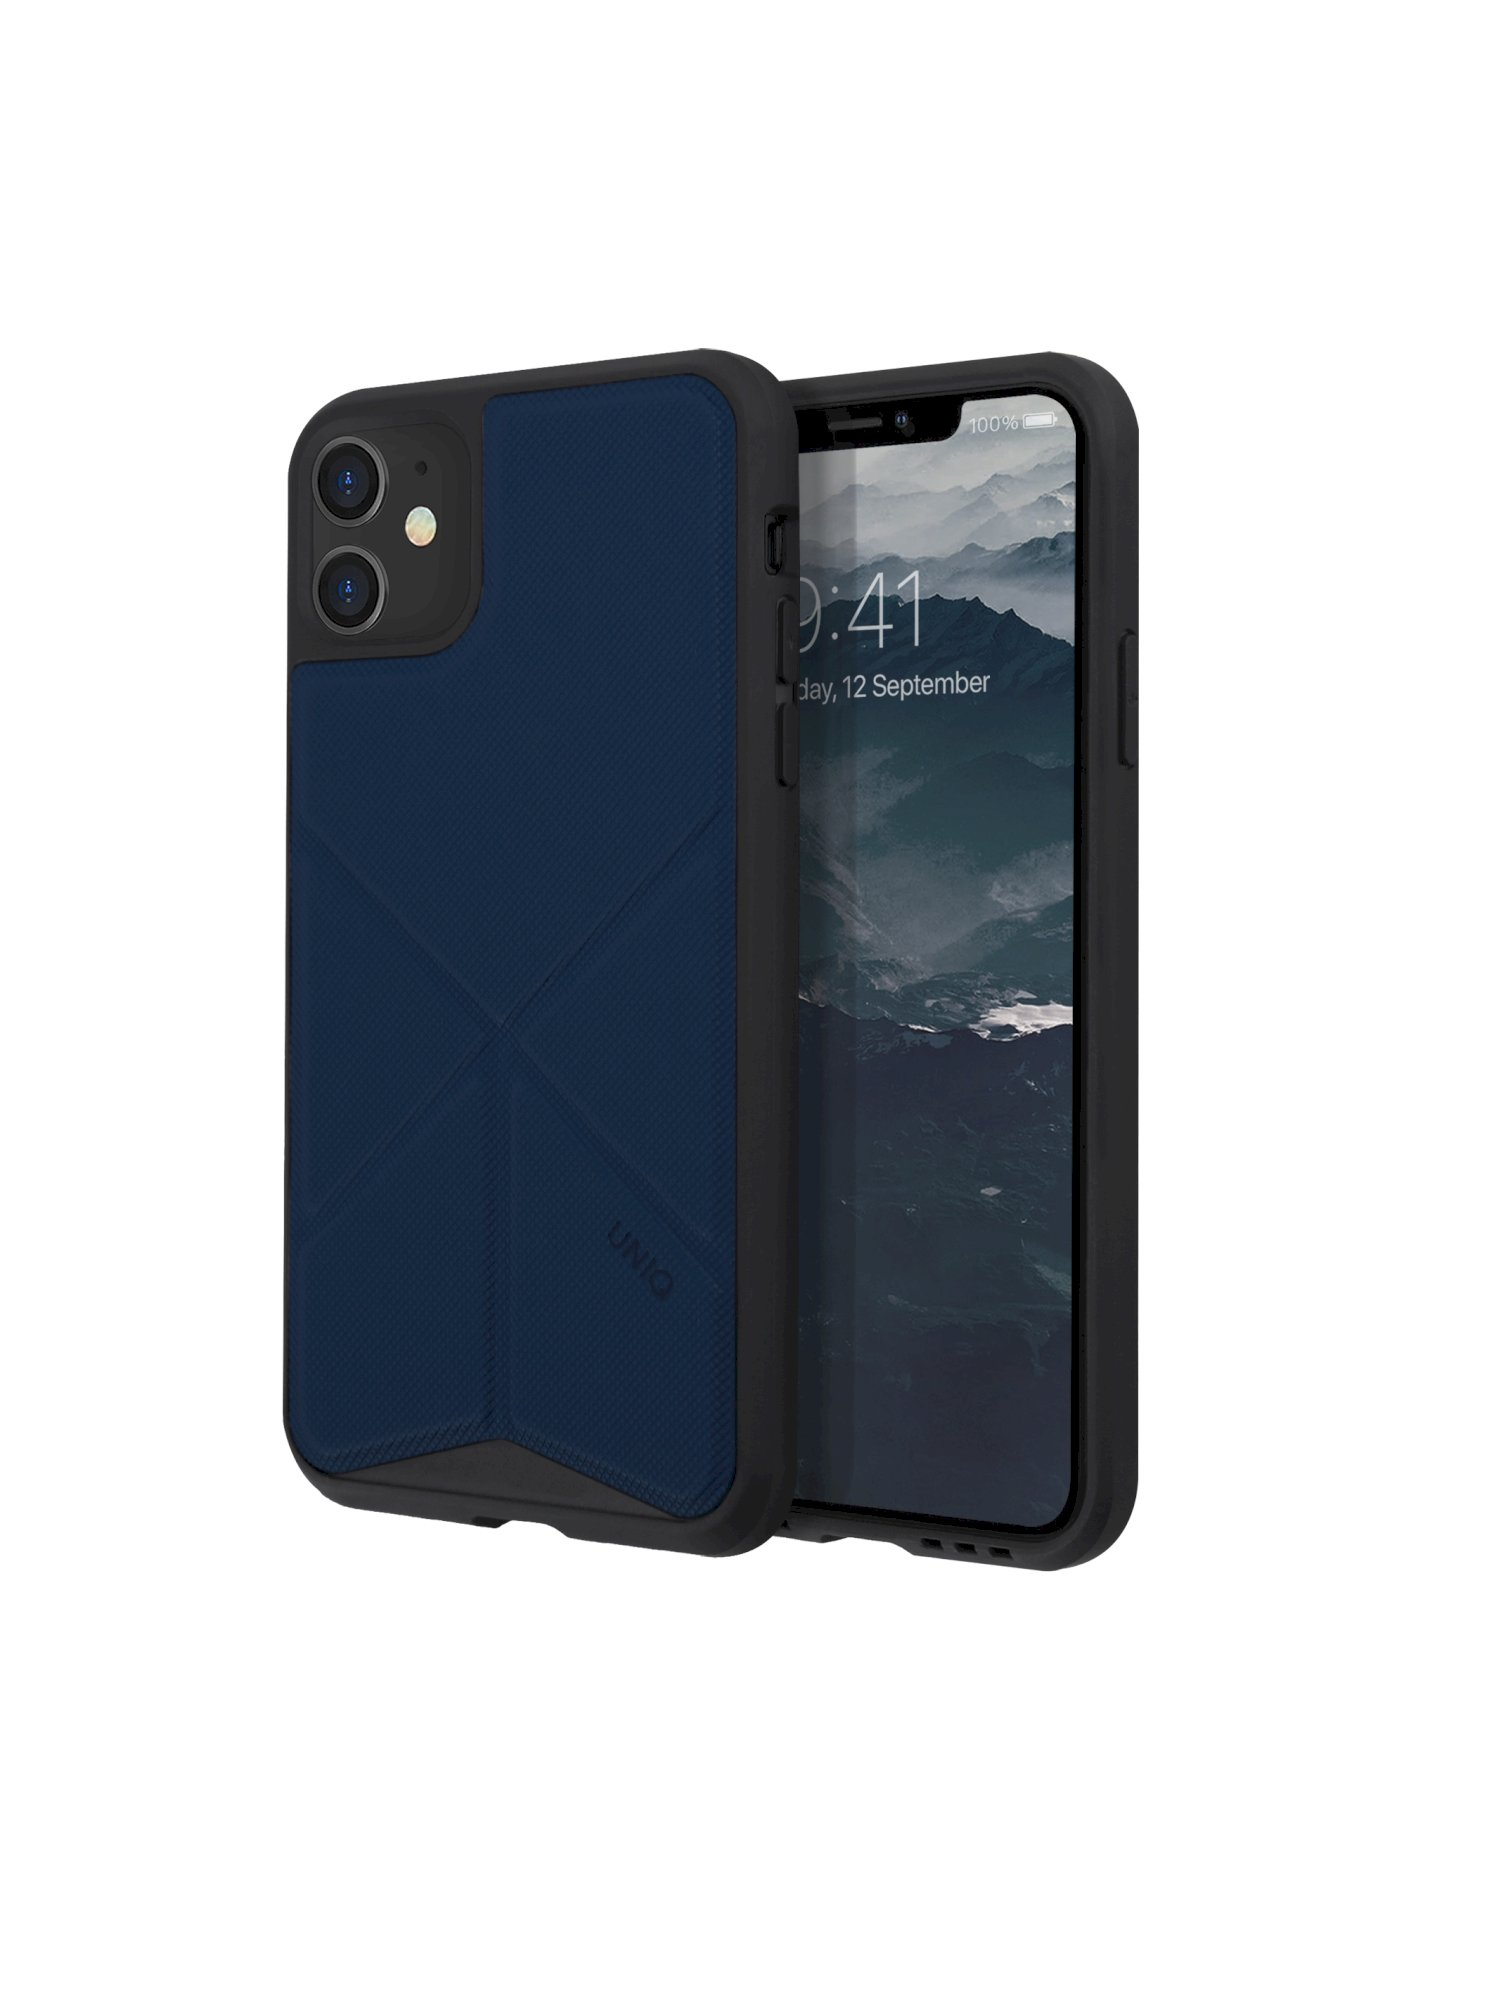 iPhone 11, case transforma, stand up navy panther, blue